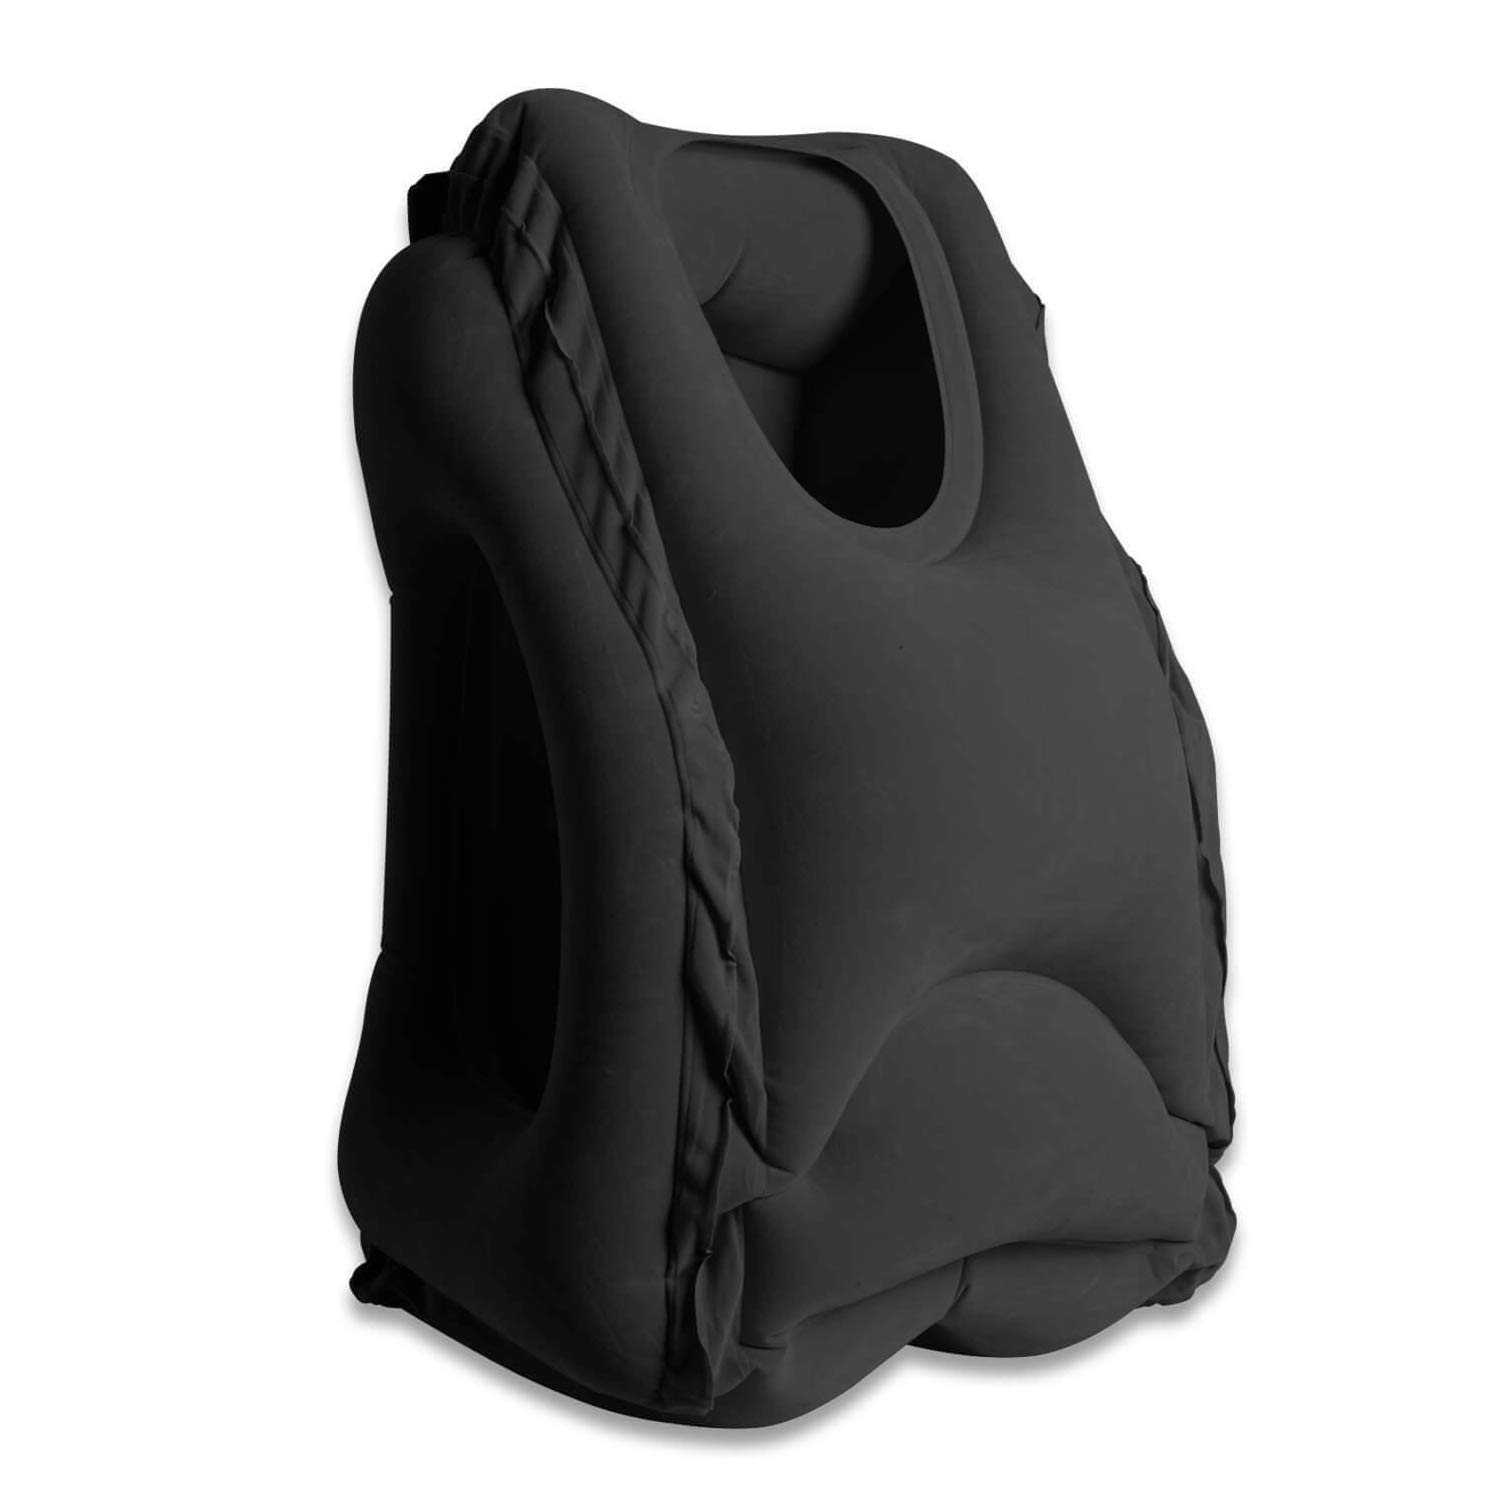 Inflatable Travel Pillow, WOWGO Airplane Neck Pillow Comfortable Pillows with Arms for Outdoor Travelling Camping, Air Planes, Trains, Cars, Buses and Indoor Office Napping [Updated Version] (Black)